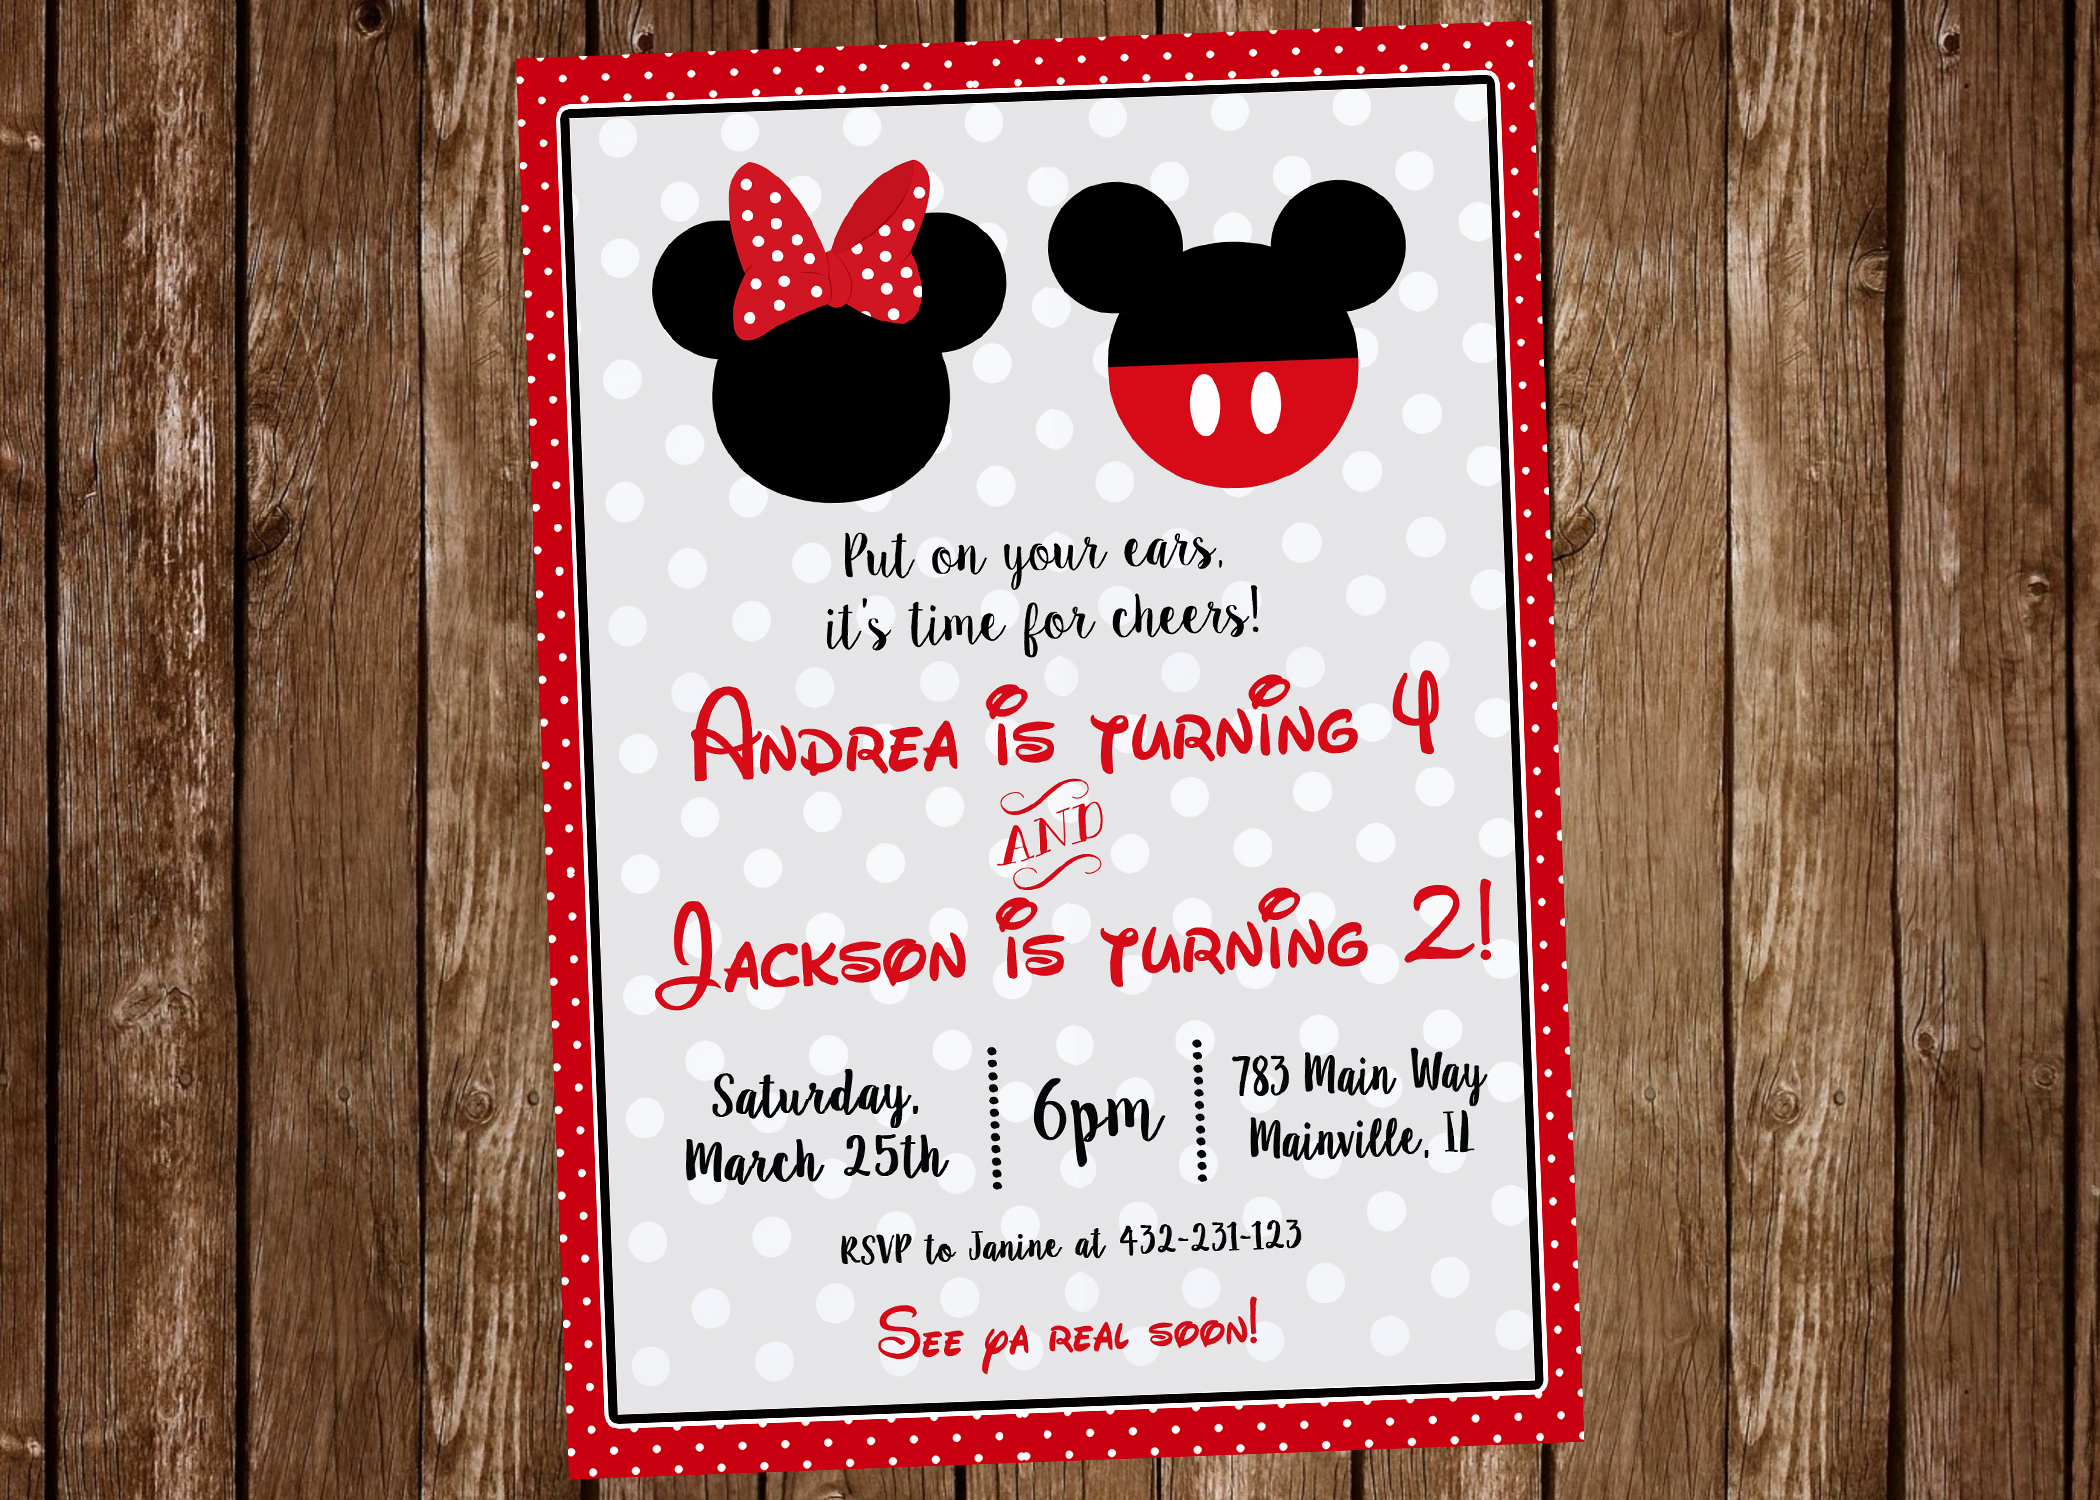 Mickey 20minnie 20invitation 20 2319 1 Original